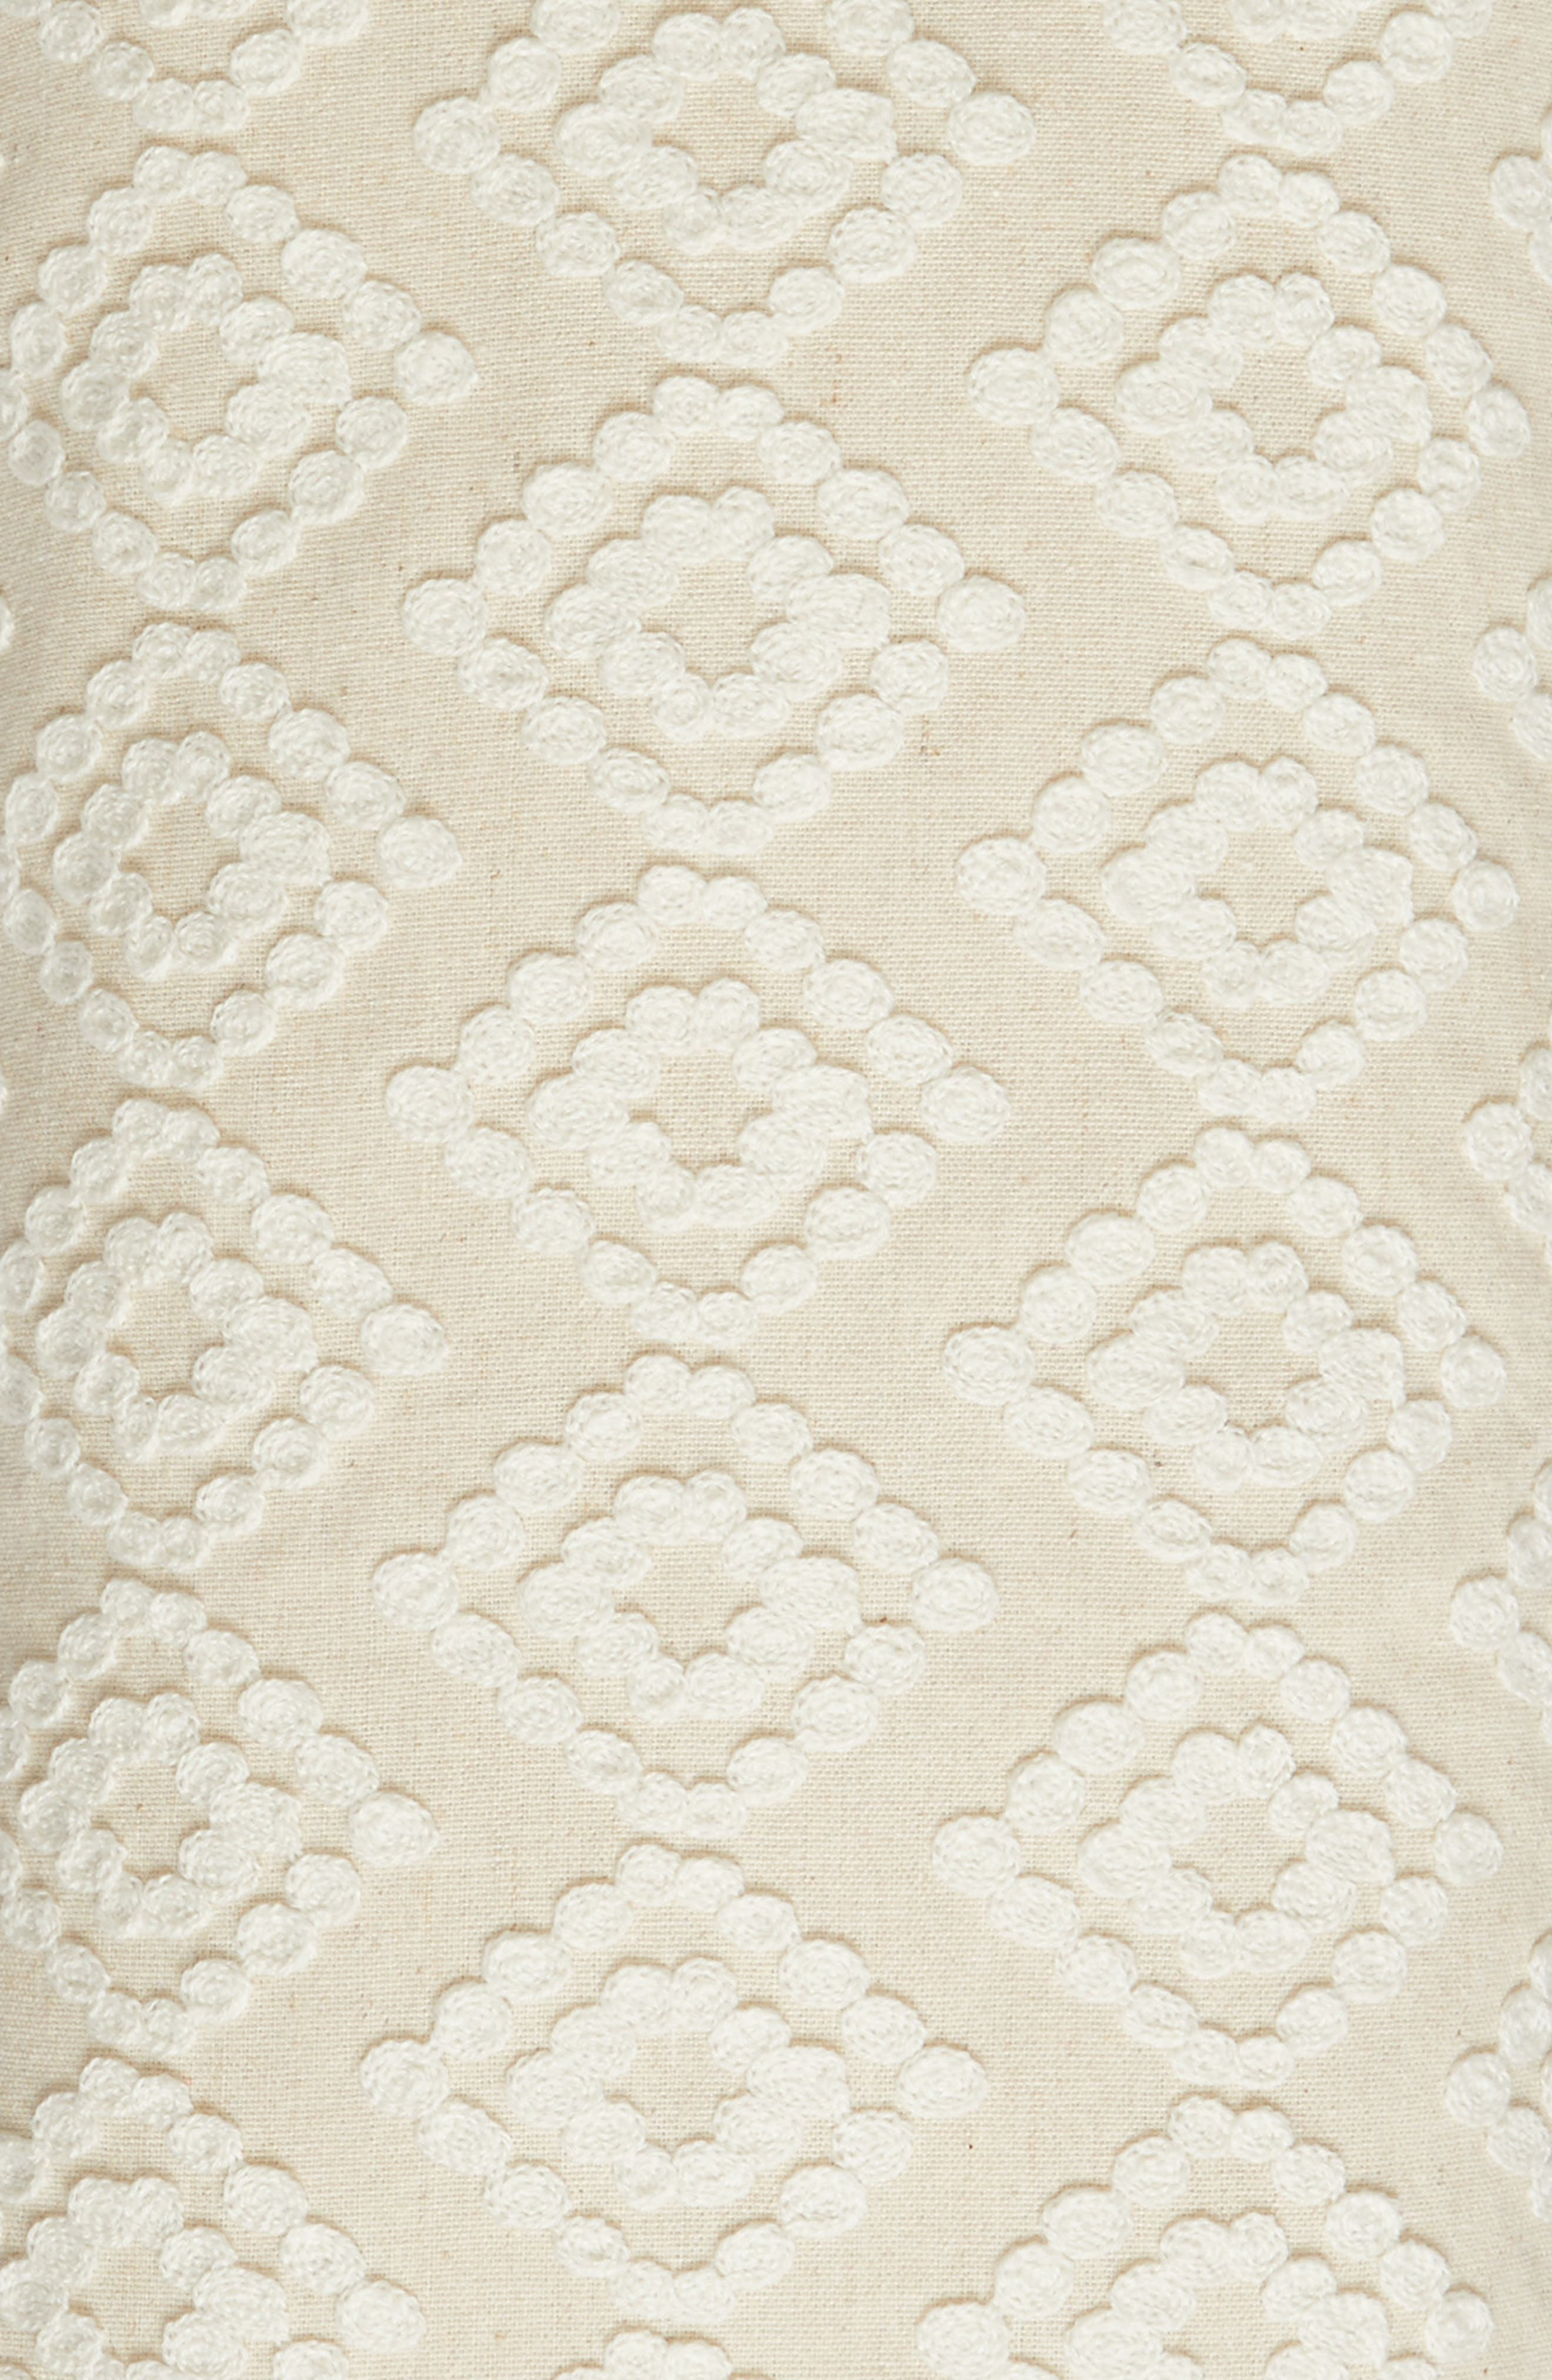 Addie Crewel Stitch Accent Pillow,                             Alternate thumbnail 2, color,                             Taupe